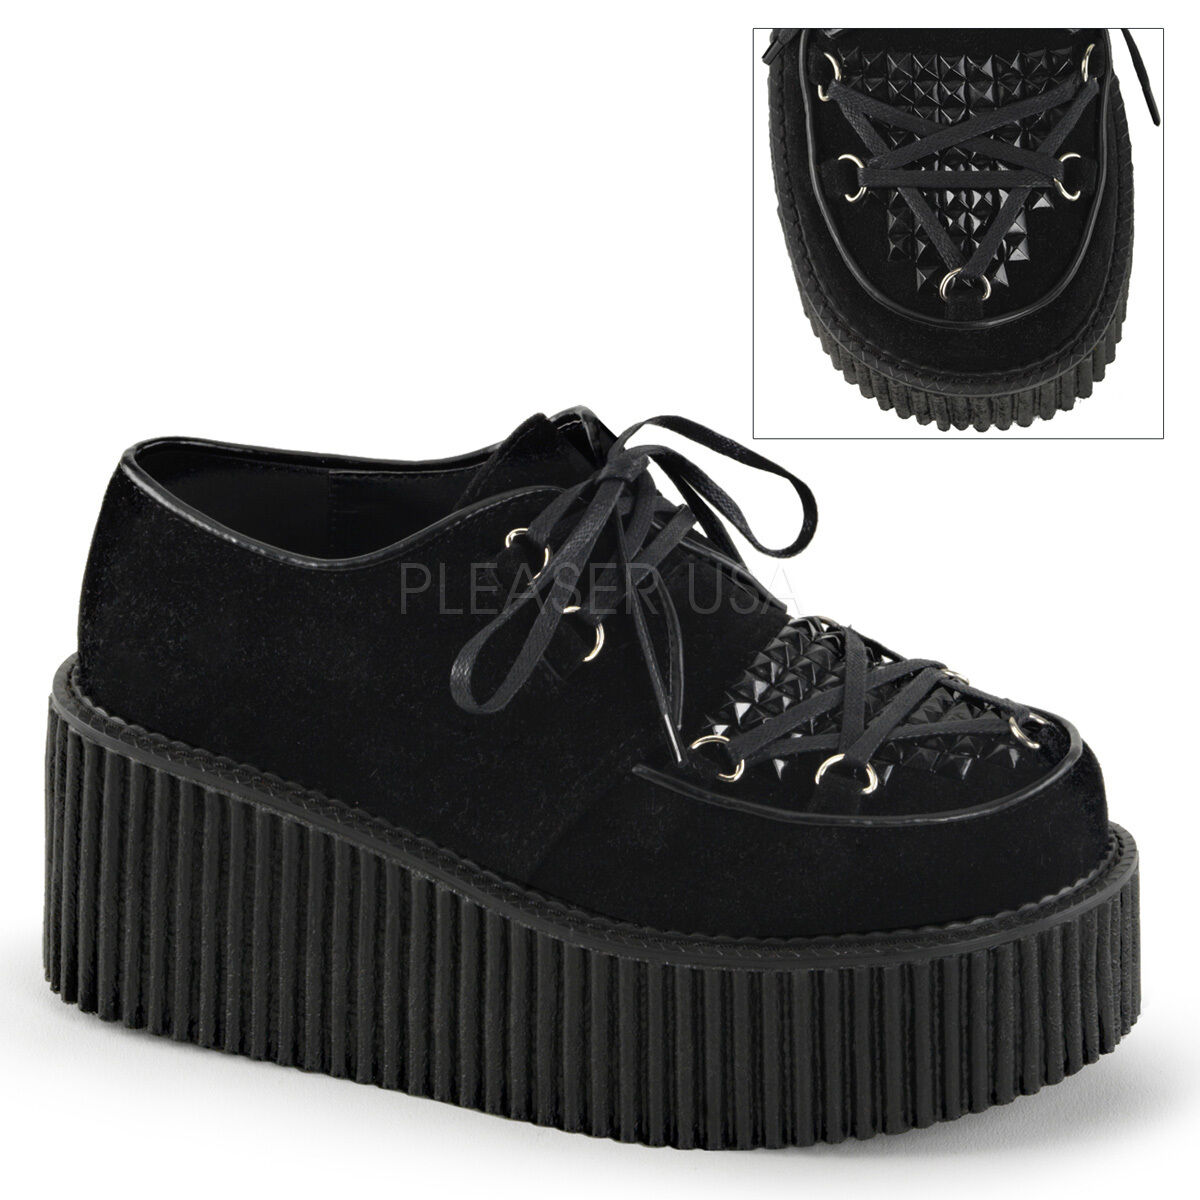 CREEPER-216 3  BIKER GOTH CASUAL D-RING VAMP  LACE UP SUEDE PLATFORM SHOES